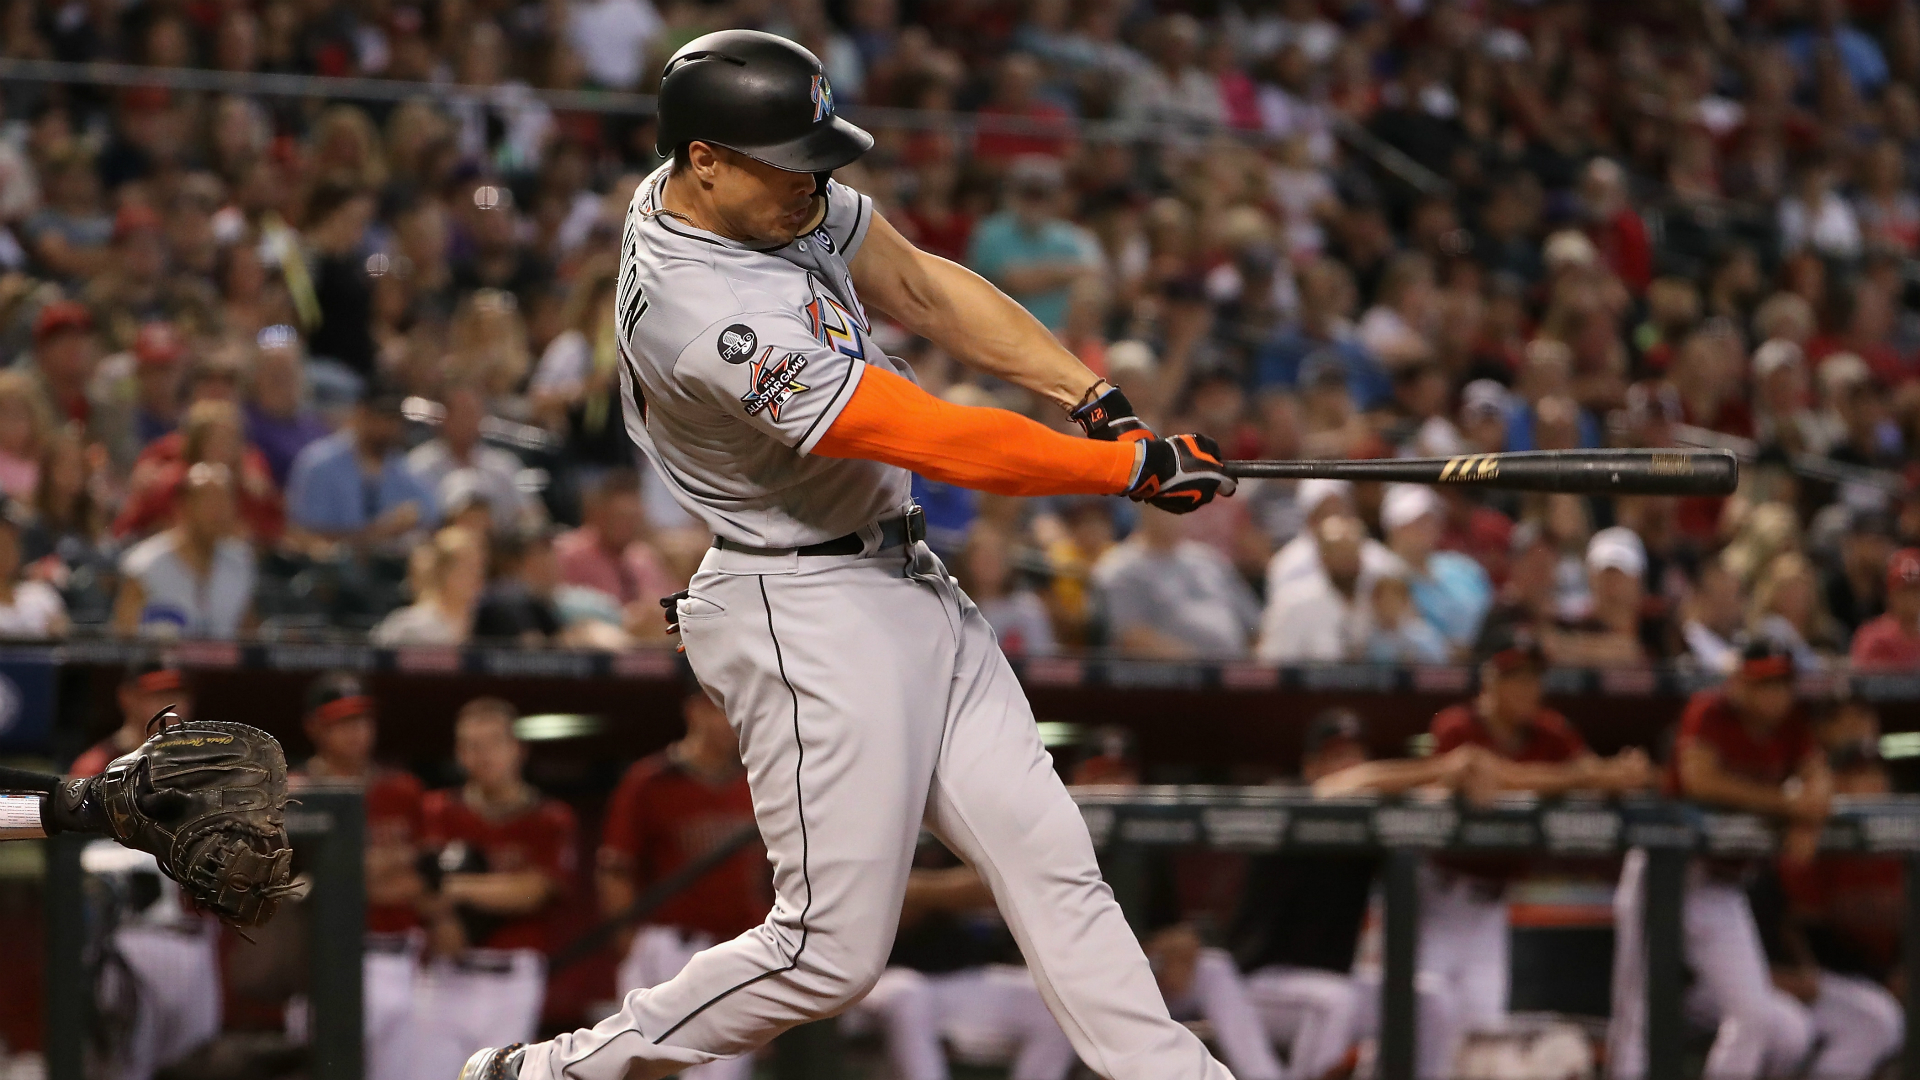 Giancarlo Stanton trade news: Marlins RF rejects trade to Giants